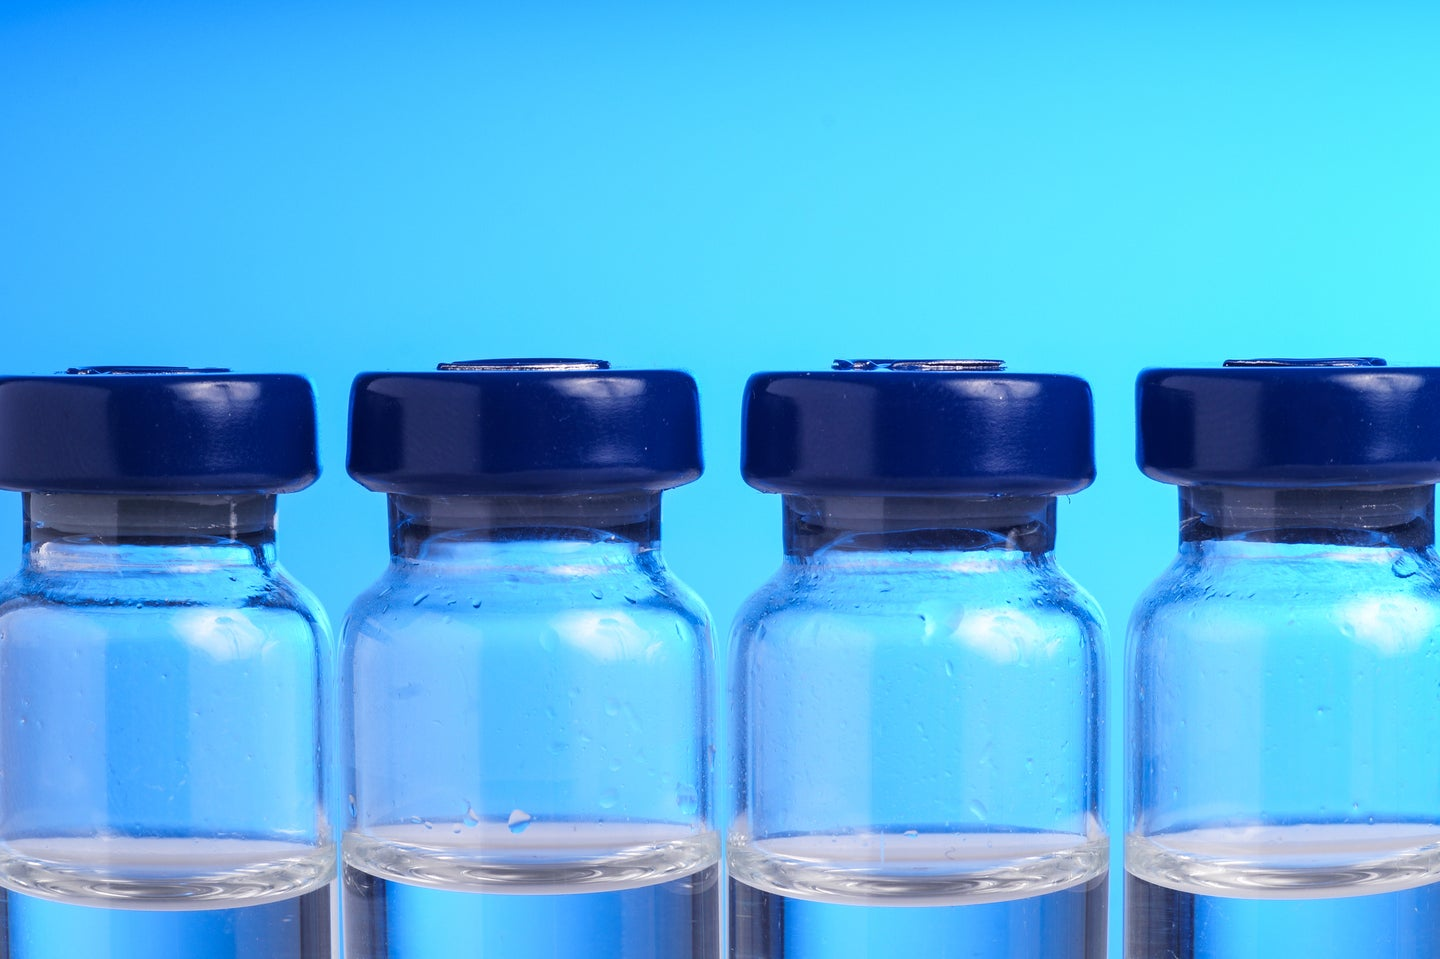 Unmarked vials to represent the COVID-19 vaccines in the US